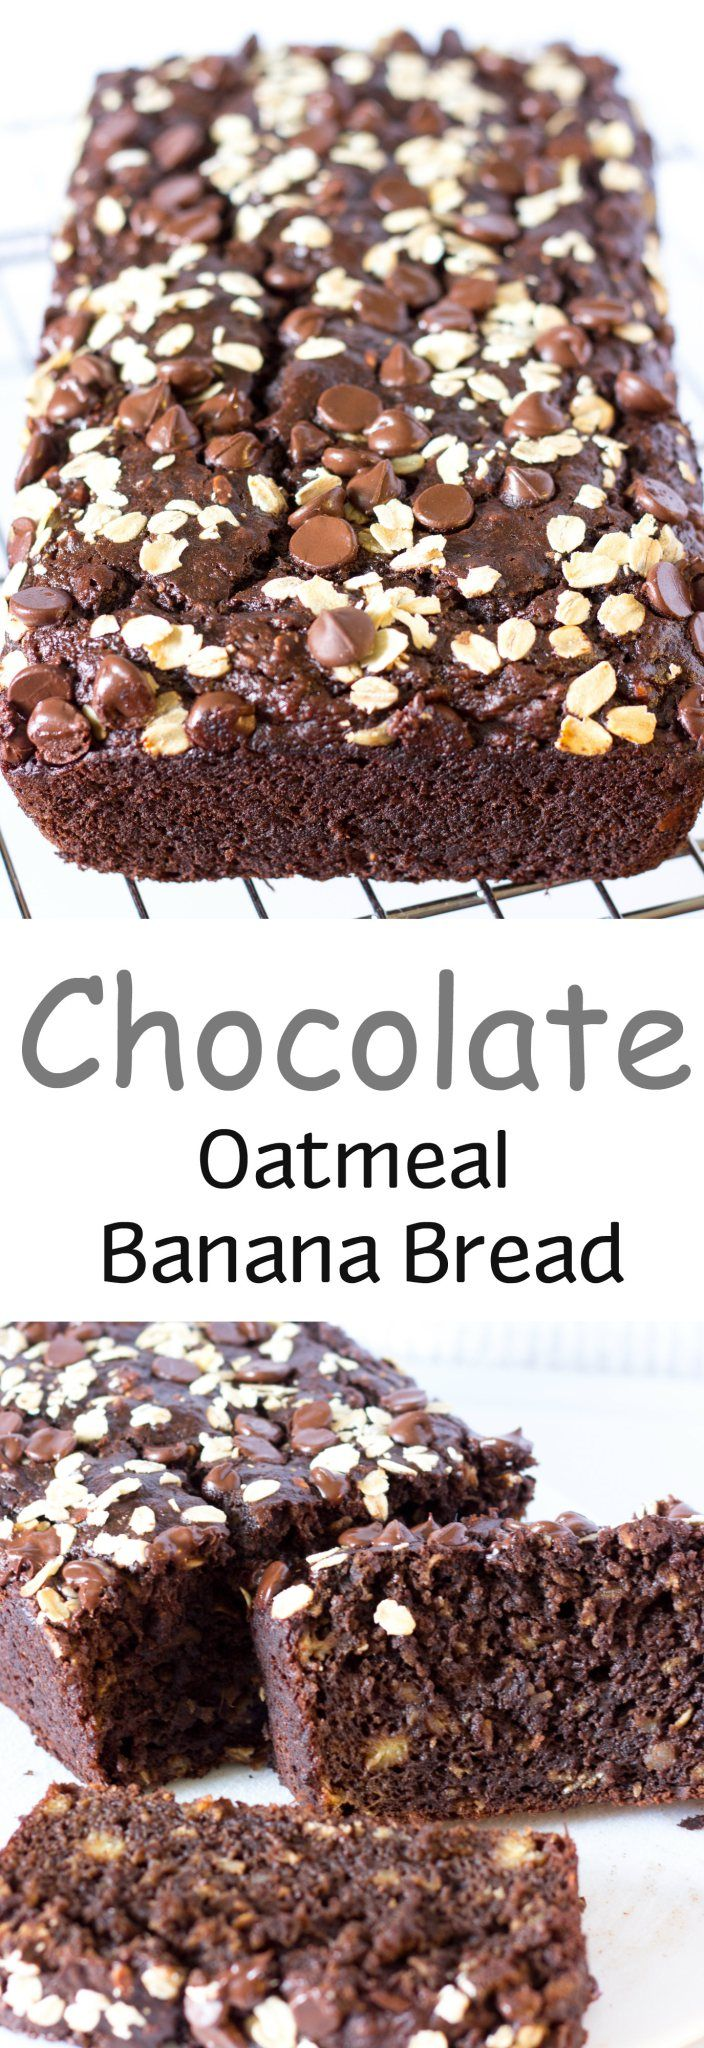 "Chocolate Oatmeal Banana Bread - ahhhmazing!! This was easy to throw together. Didn't have a loaf pan so I used a 9"" square pan and baked for 35 minutes. Added a smidge of butter on top because that's how I roll. This was really good - will definitely be making this version of banana bread again!! (will try adding flax seed and partial whole wheat flour)"